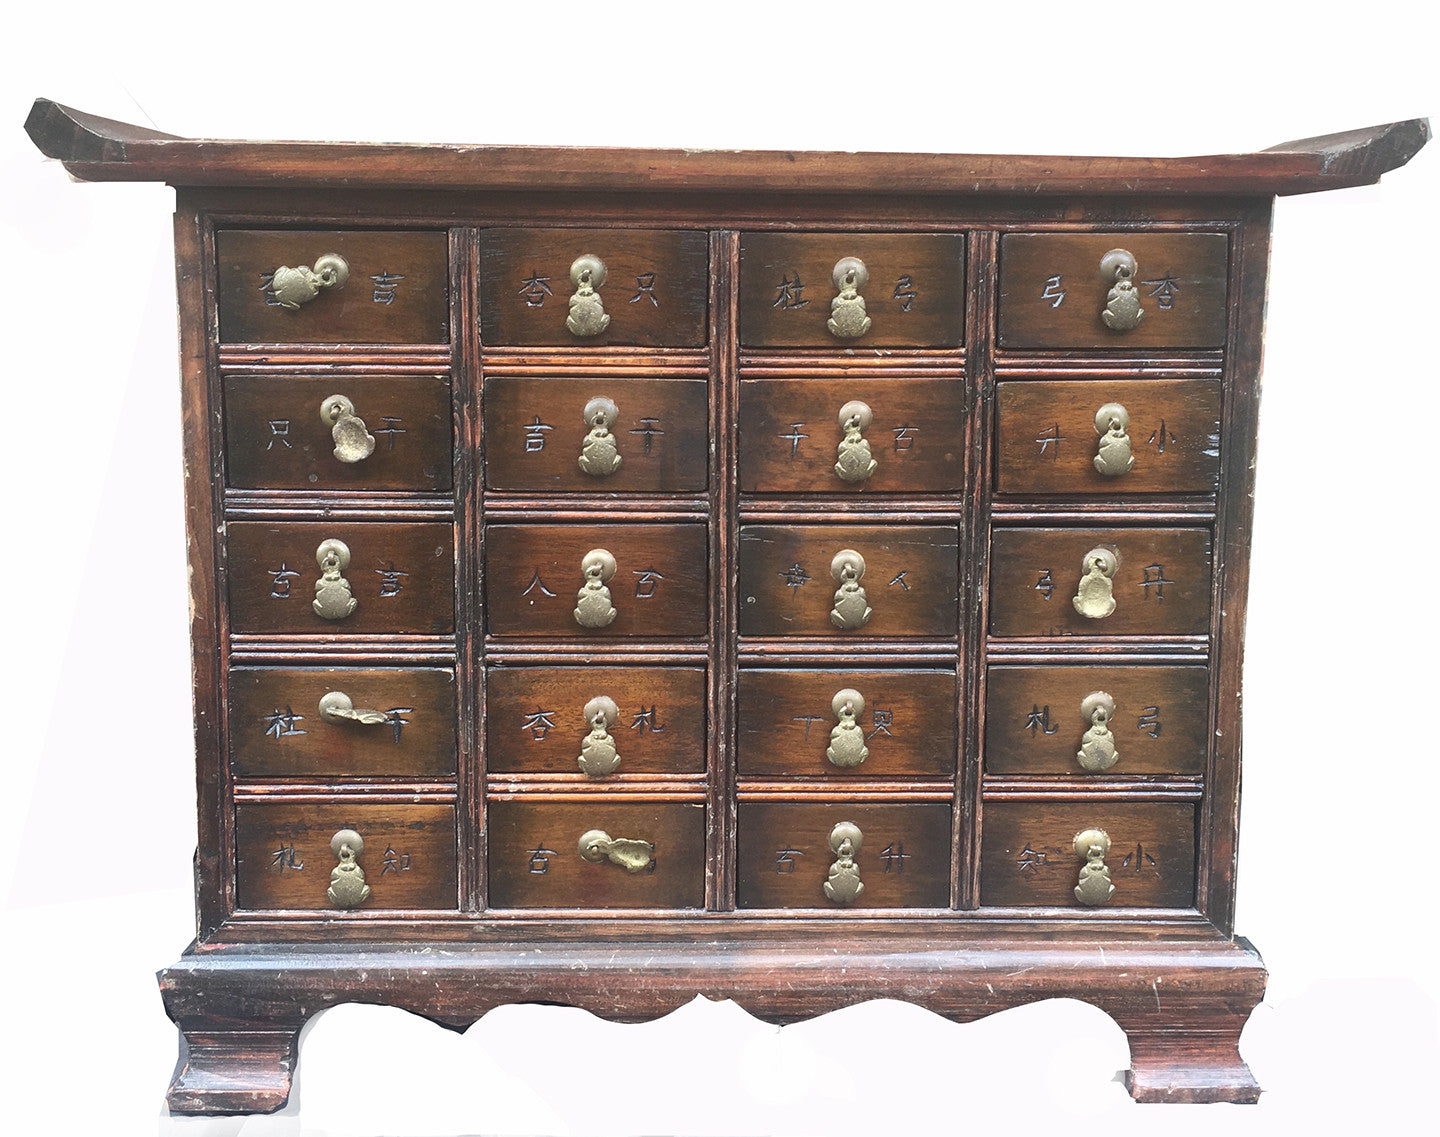 Charmant SOLD Japanese Vintage Apothecary Cabinet